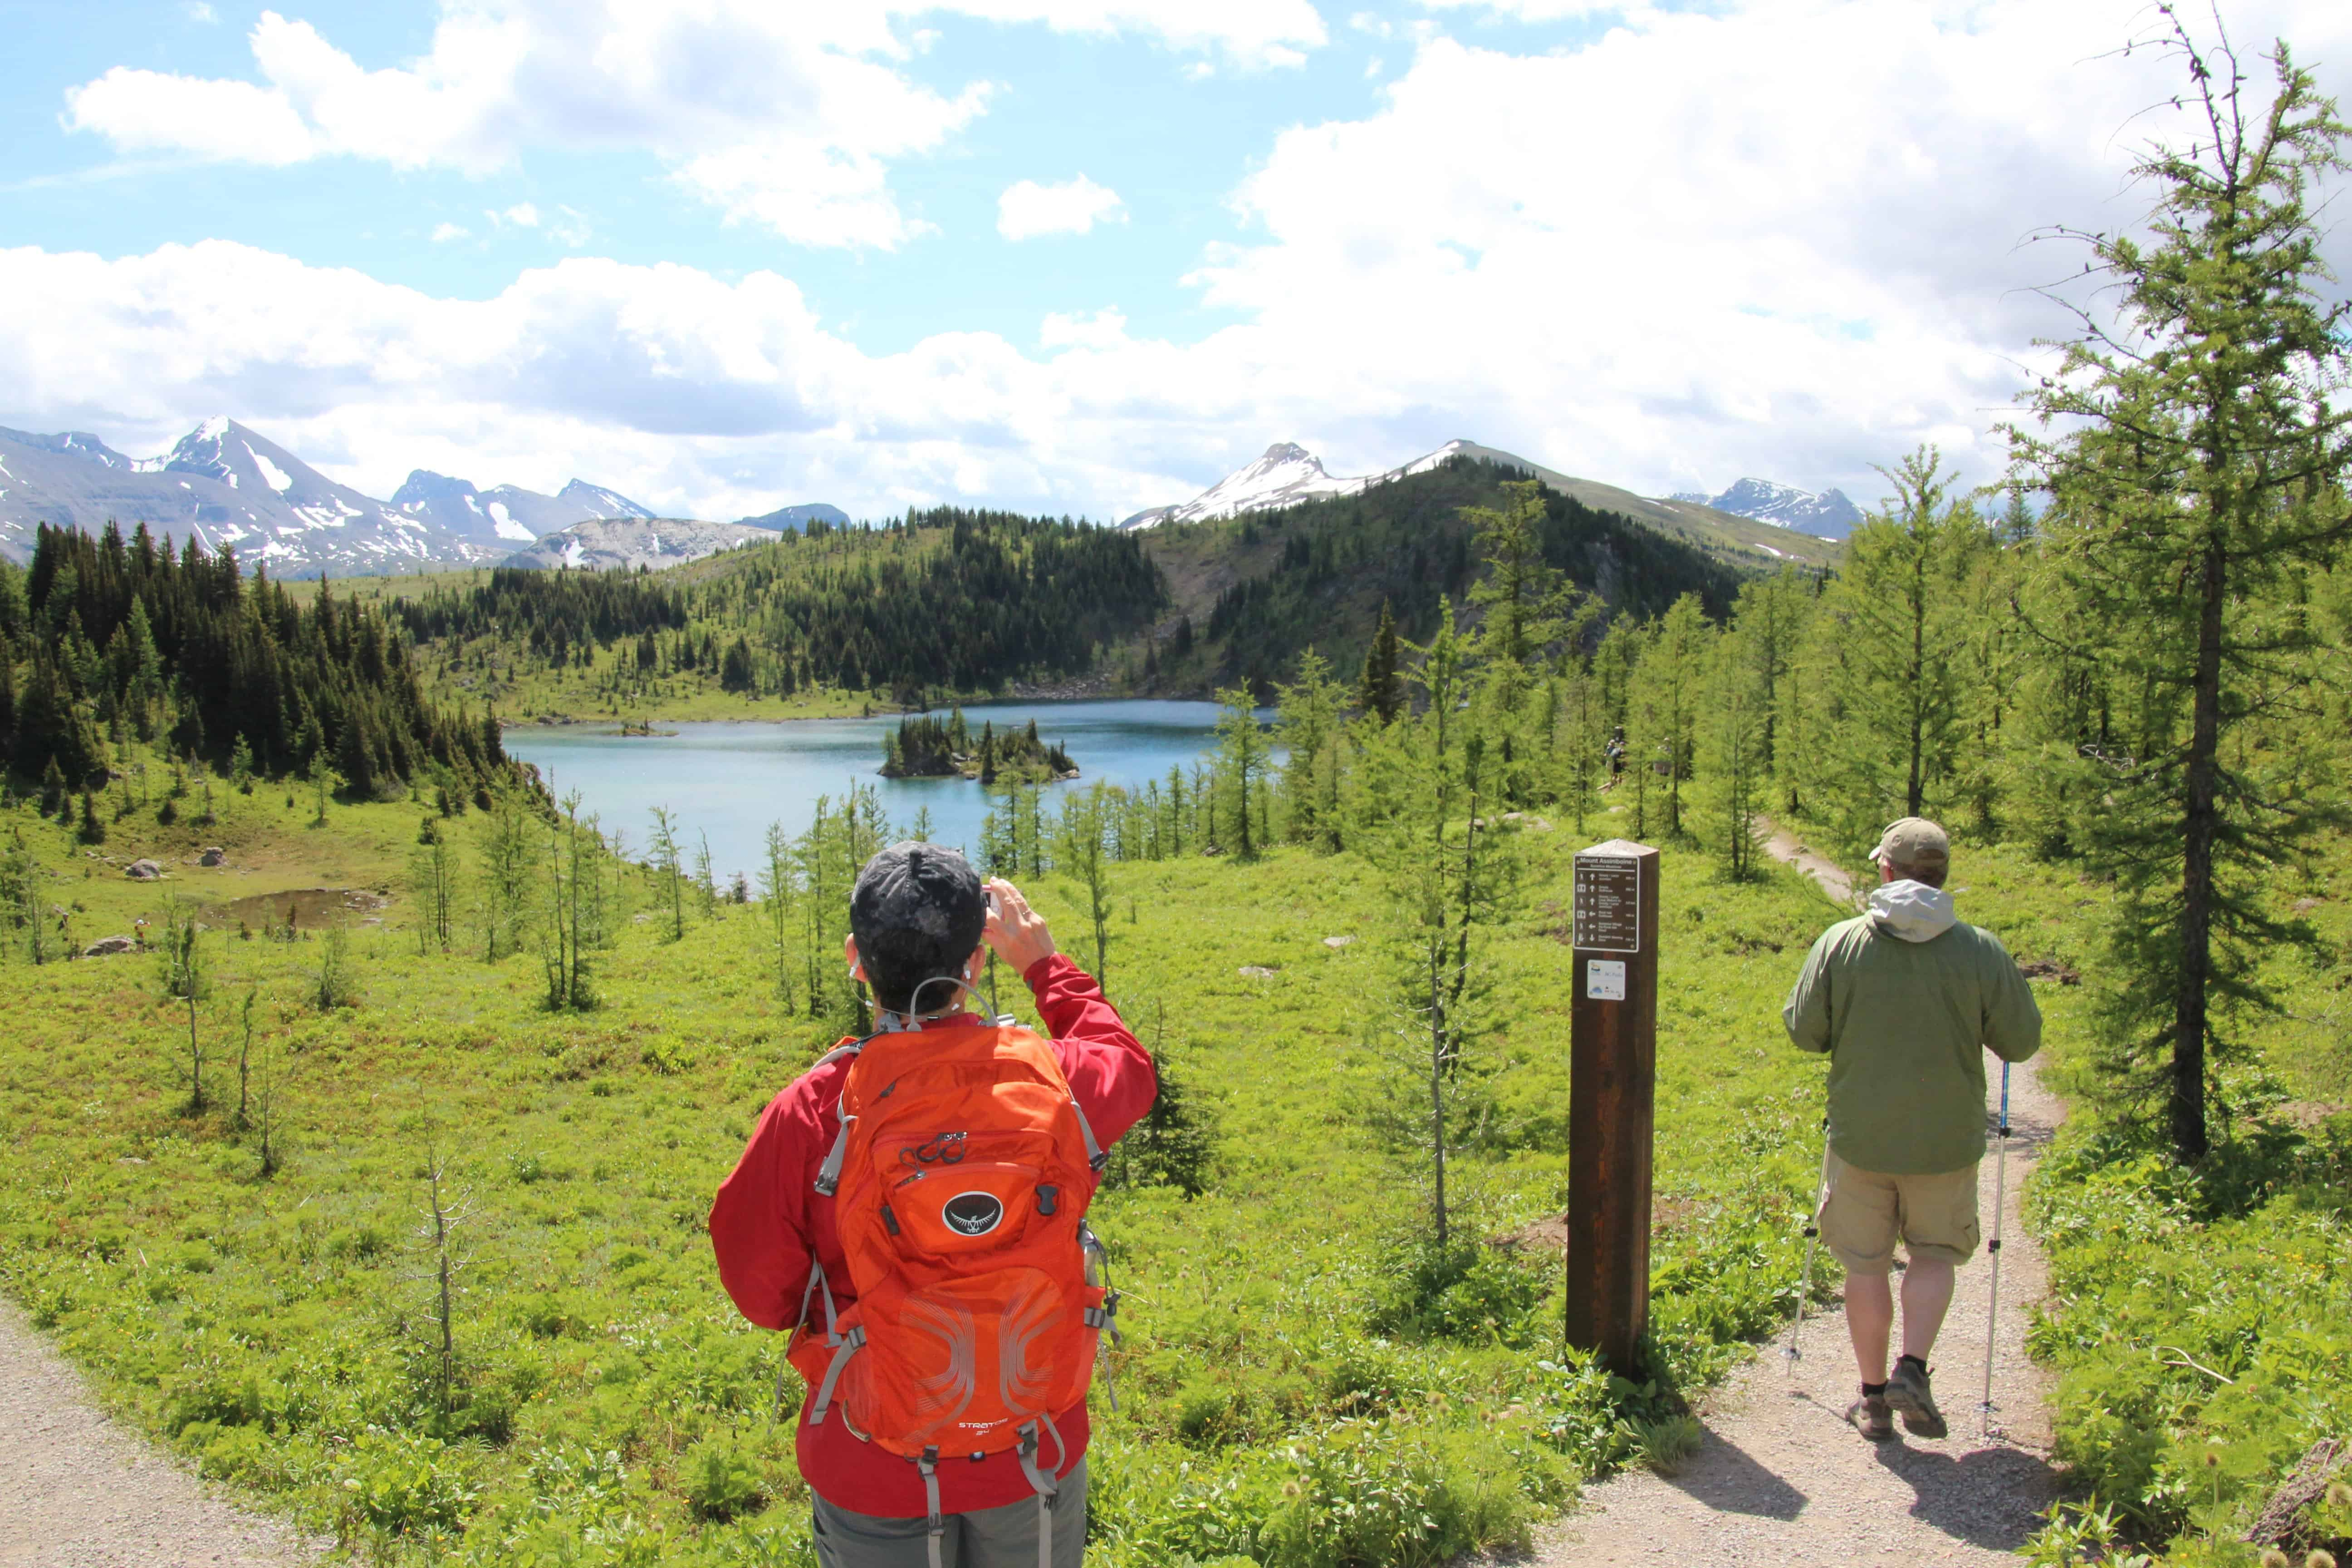 lady taking a picture at sunshine meadows, Banff National Park